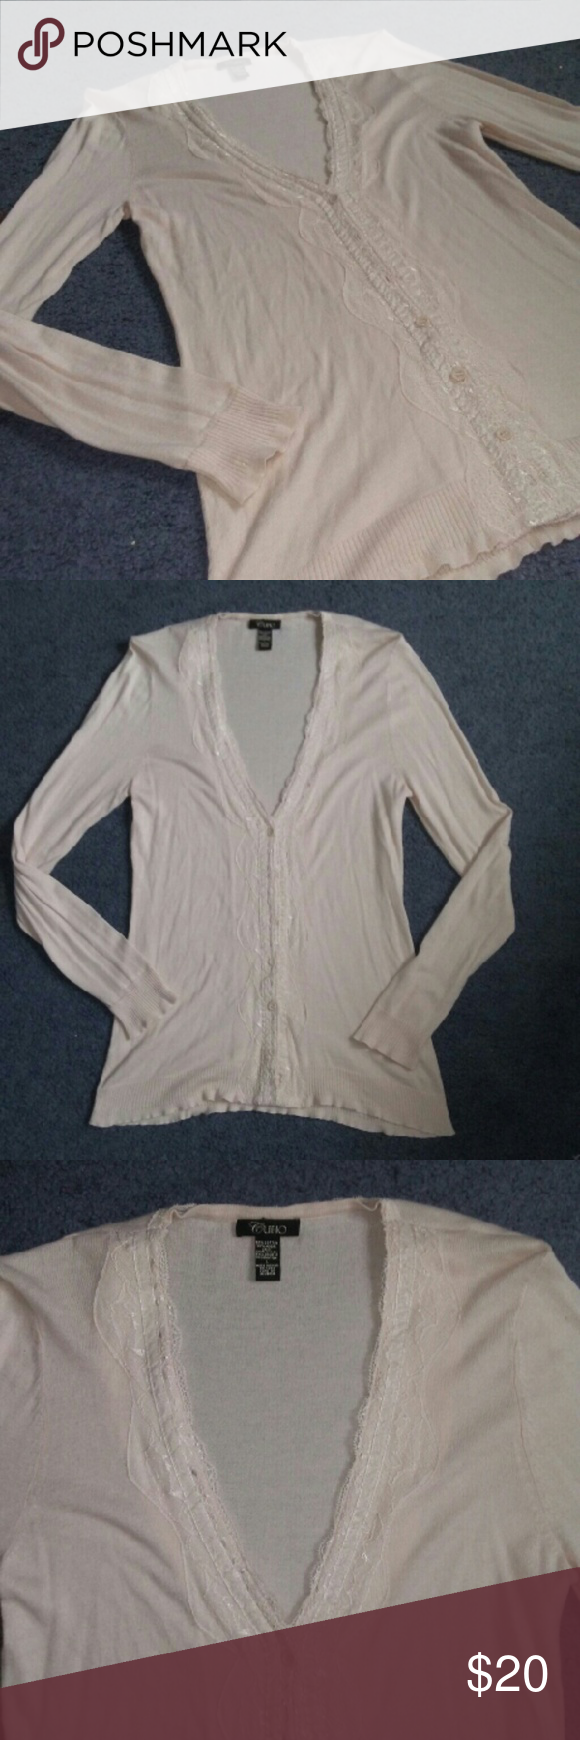 87ae066563d Cupio Lace Button Down V Neck Cardigan Worn 1x. Size Large. Great  condition. From Bonton. Cupio Sweaters Cardigans